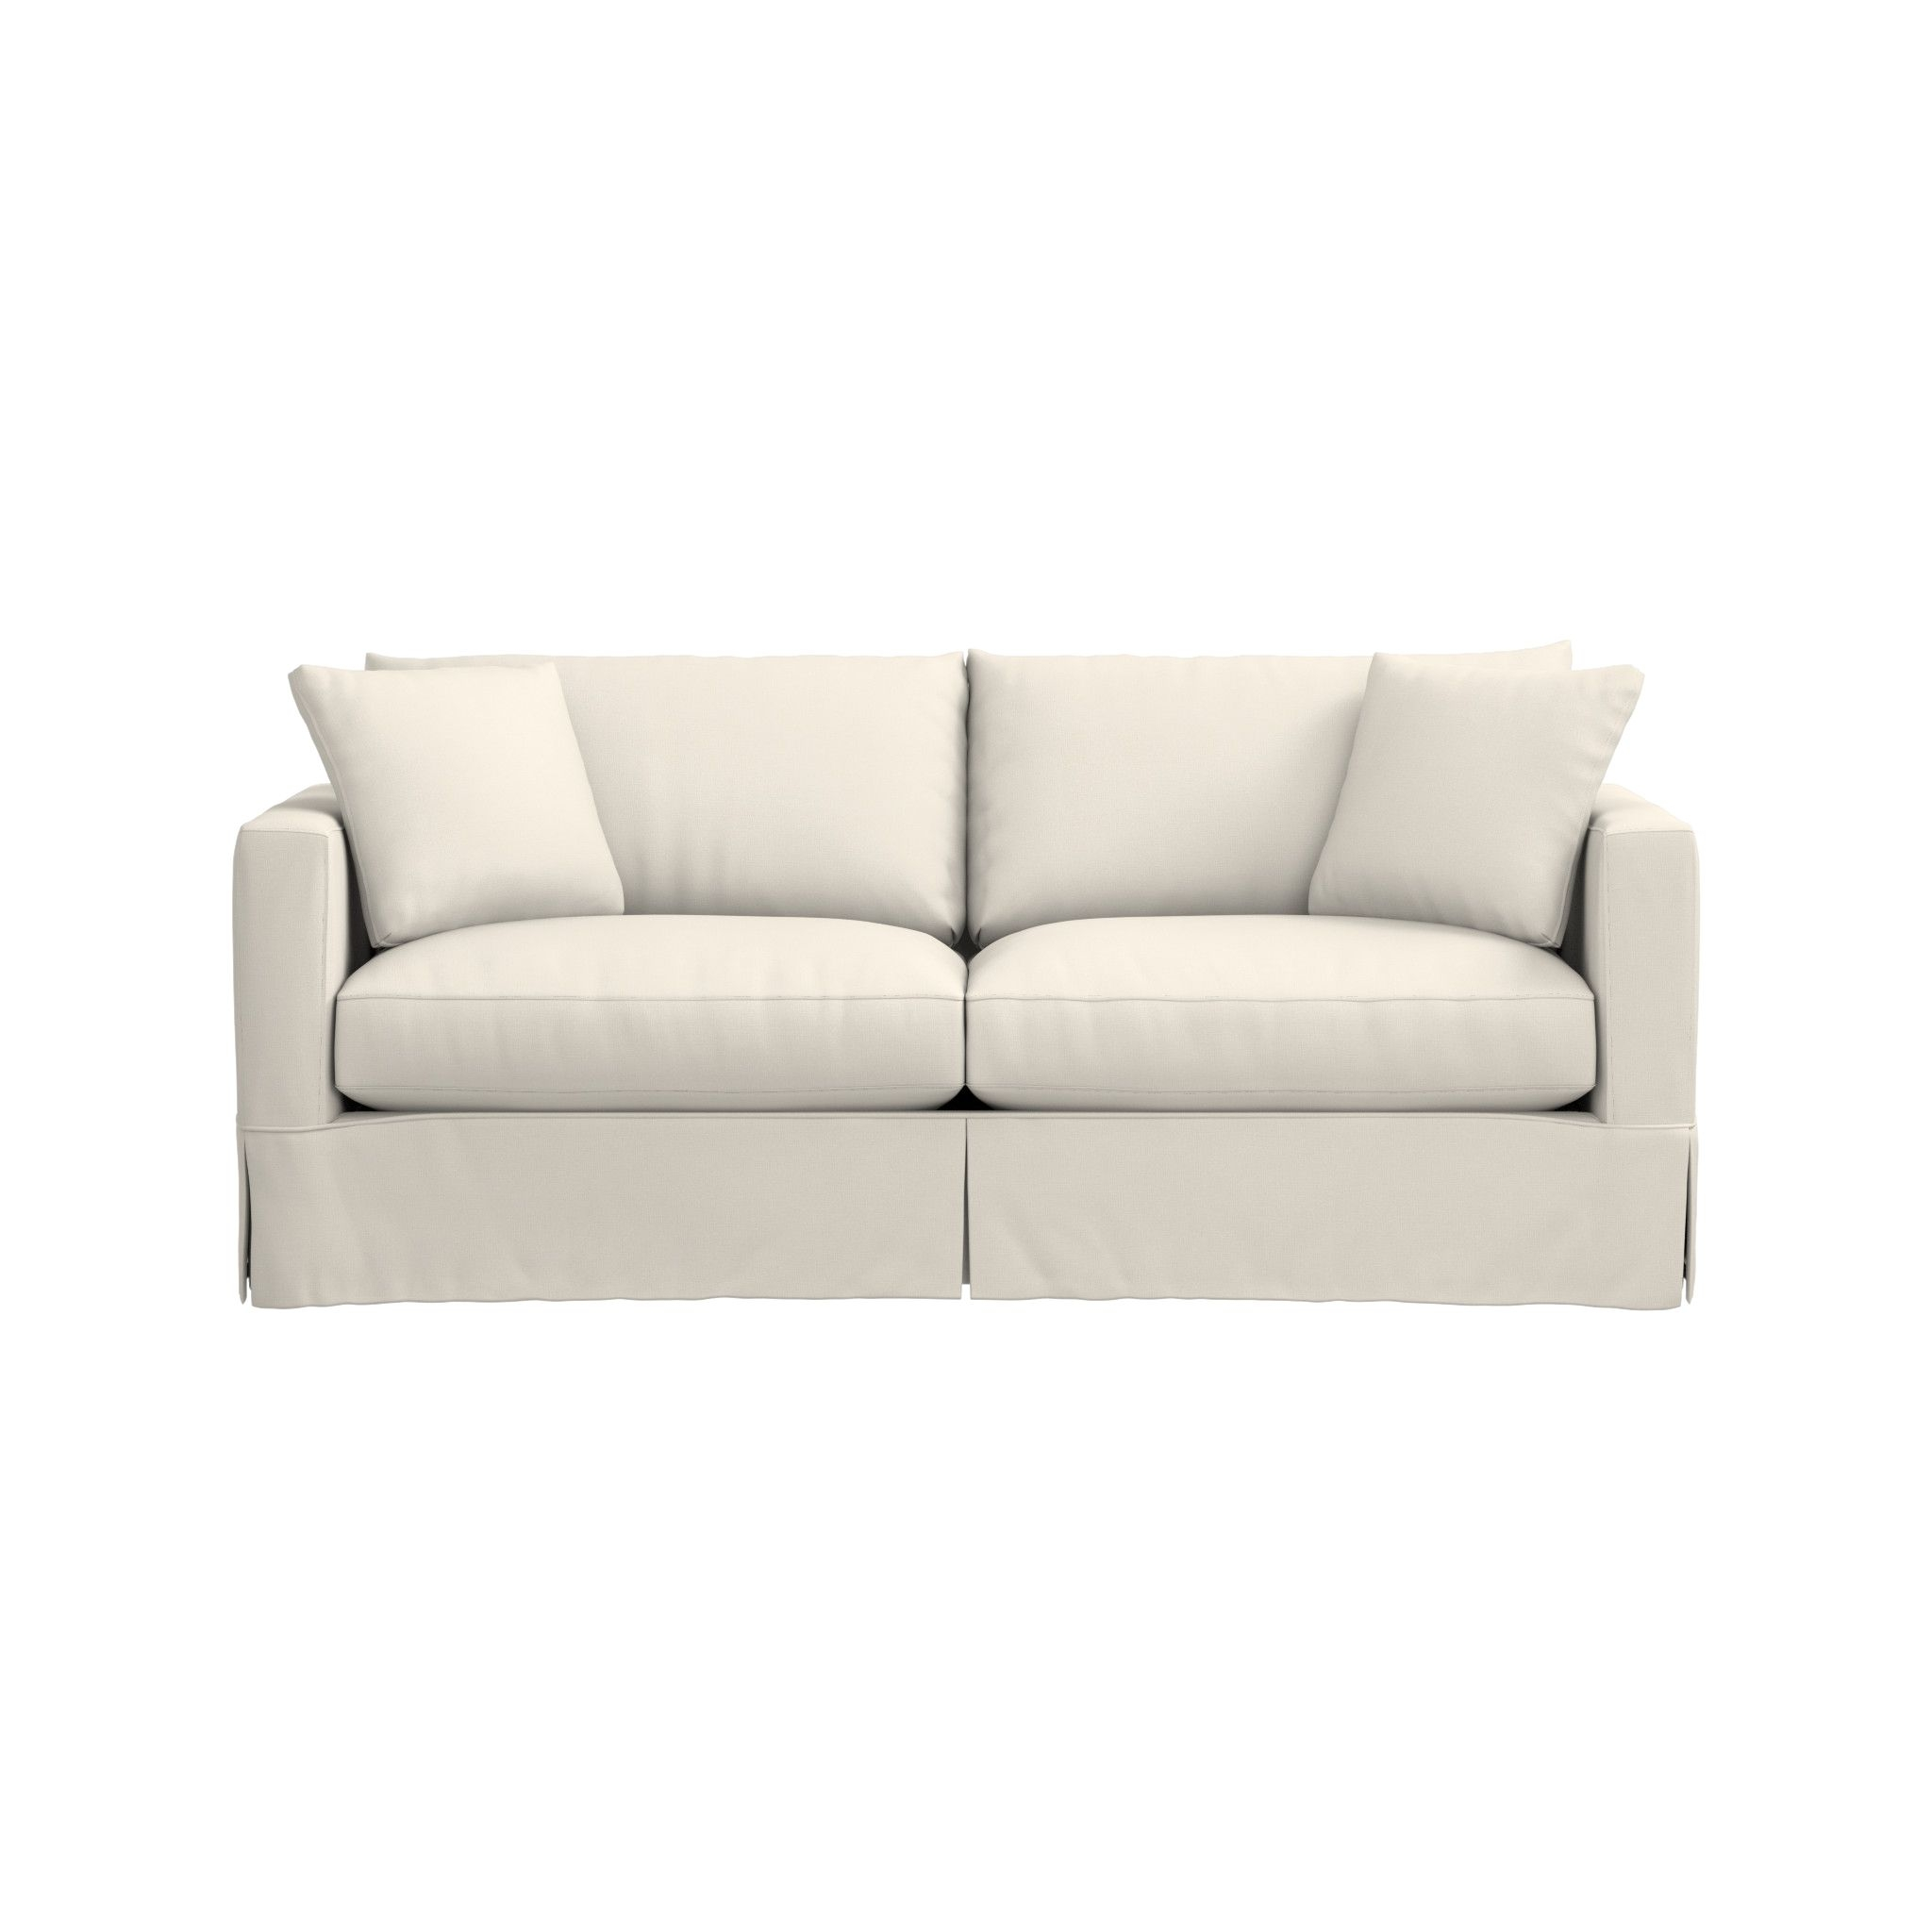 Willow White Sleeper Couch | Crate And Barrel pertaining to Crate And Barrel Sleeper Sofas (Image 15 of 15)